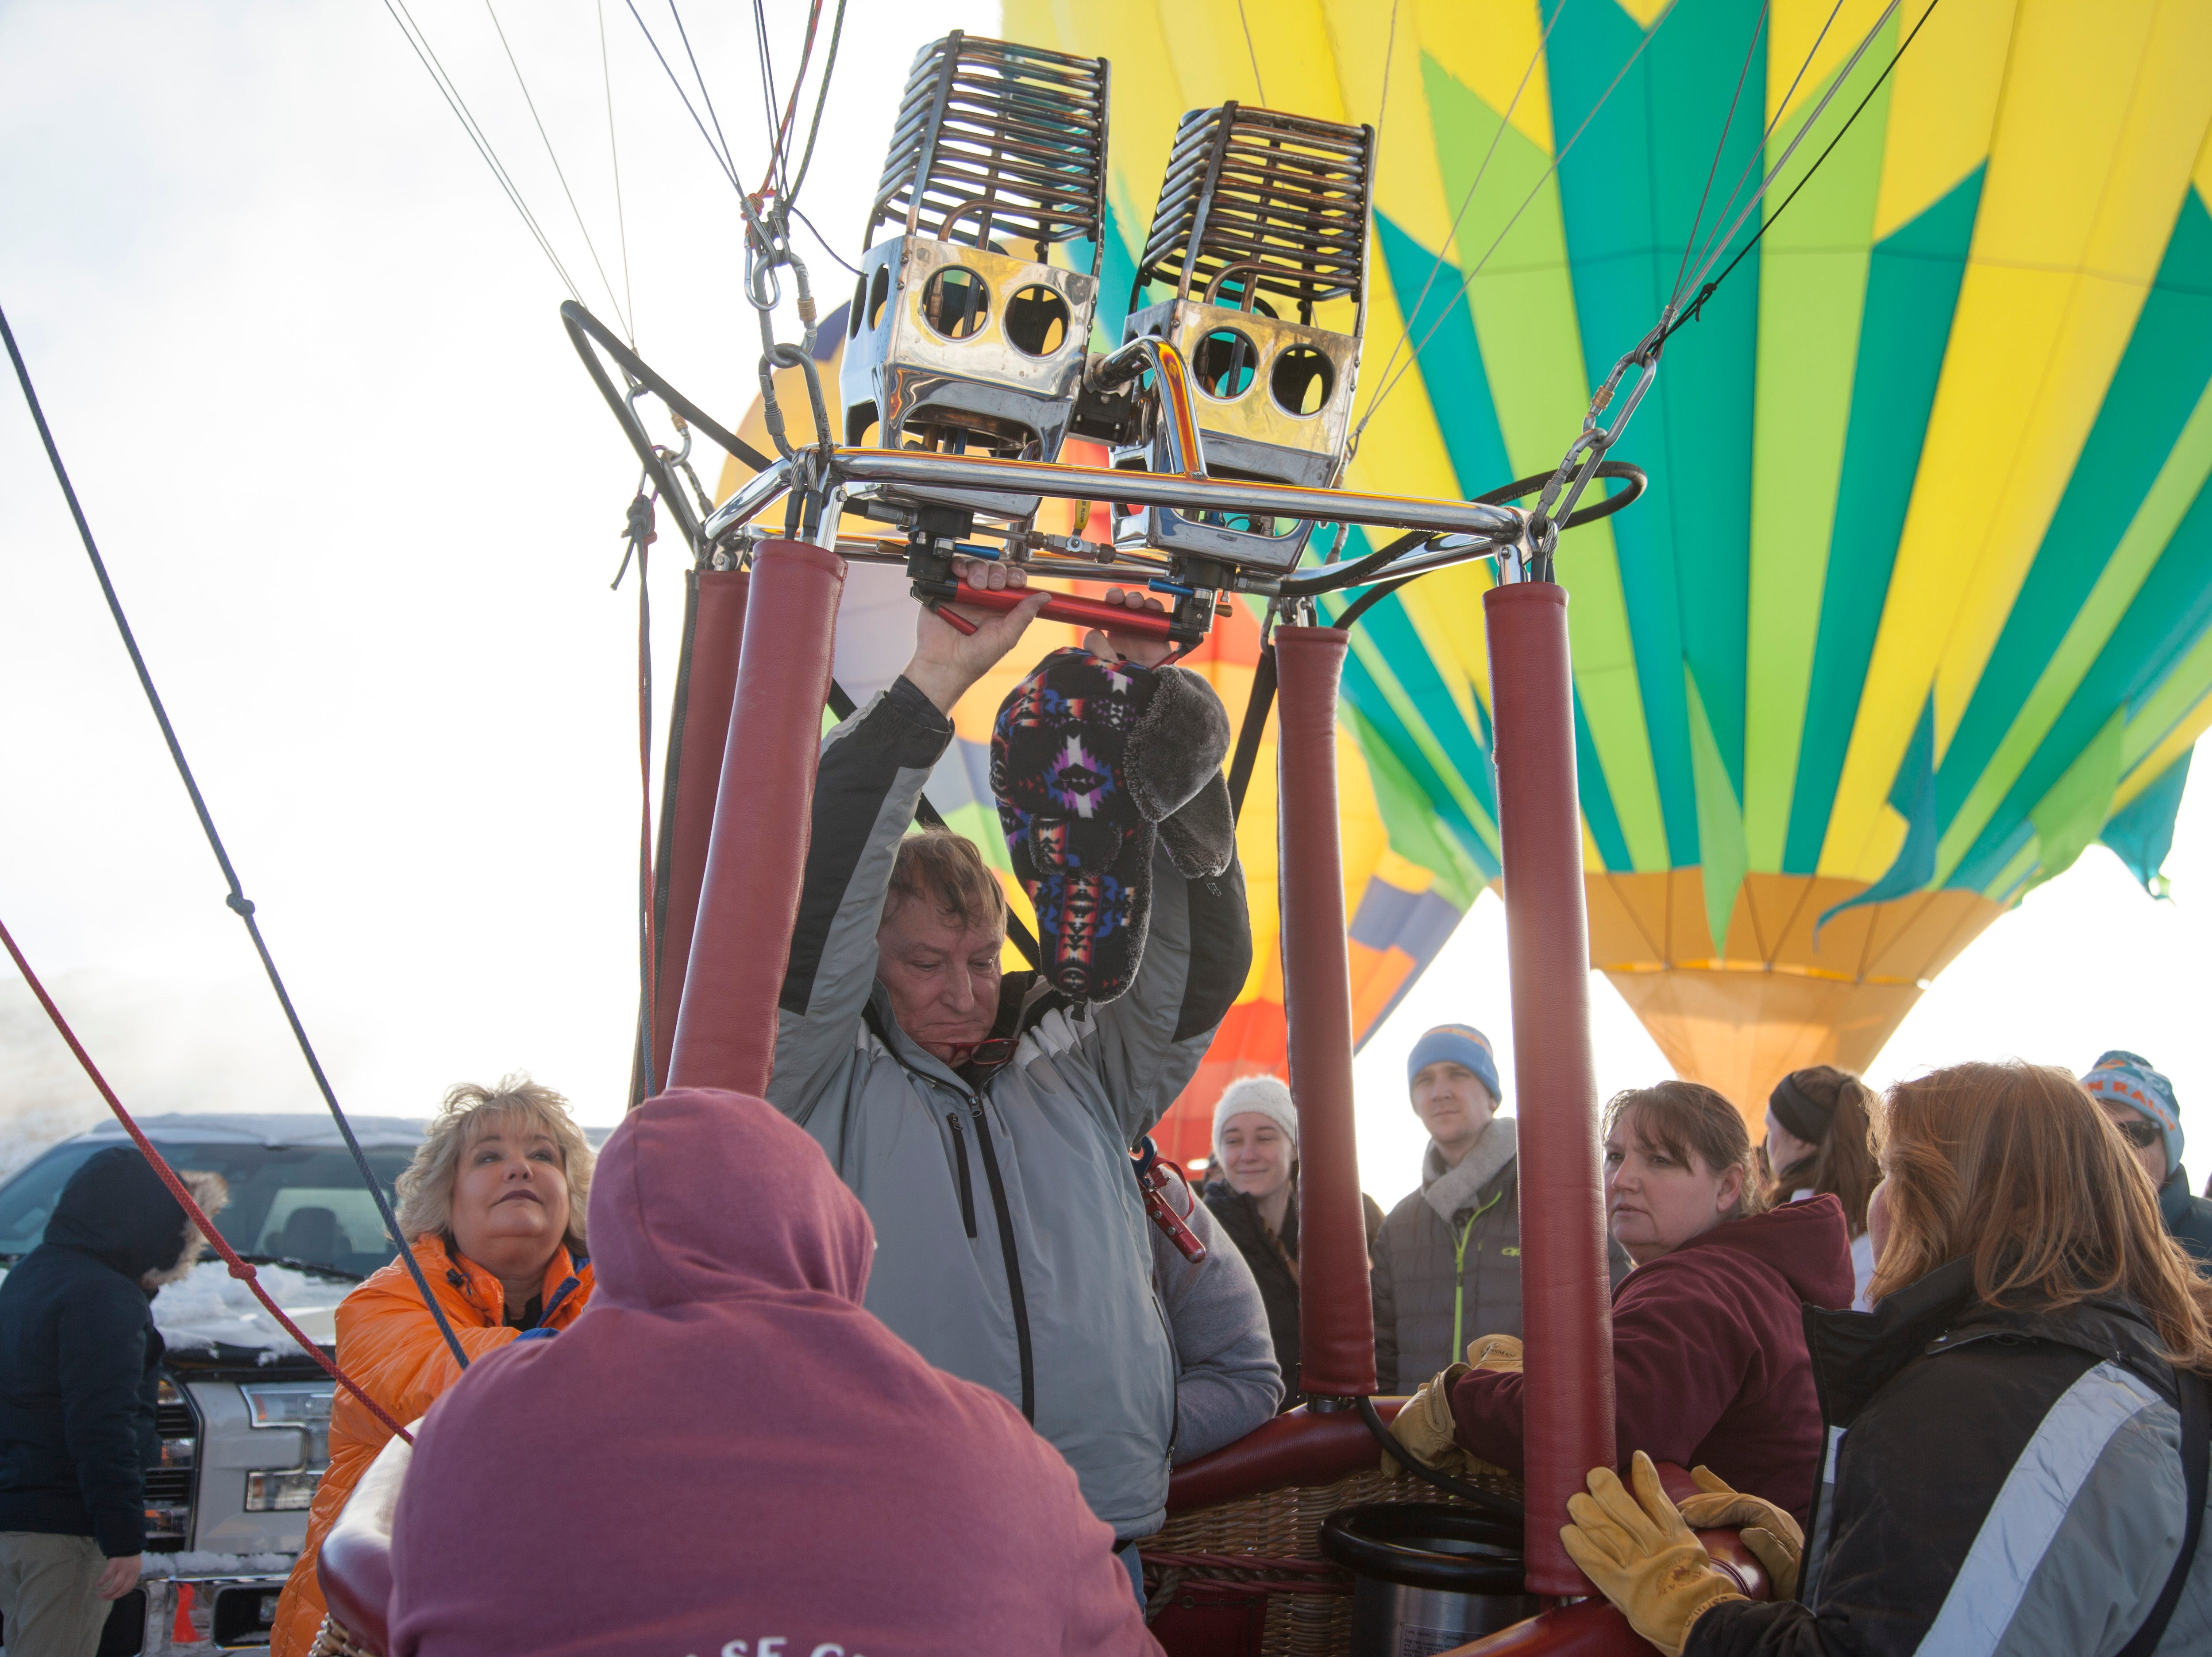 Pilots inflate their balloon in Kanab during the Balloons and Tunes festival Saturday, Feb. 16, 2019.